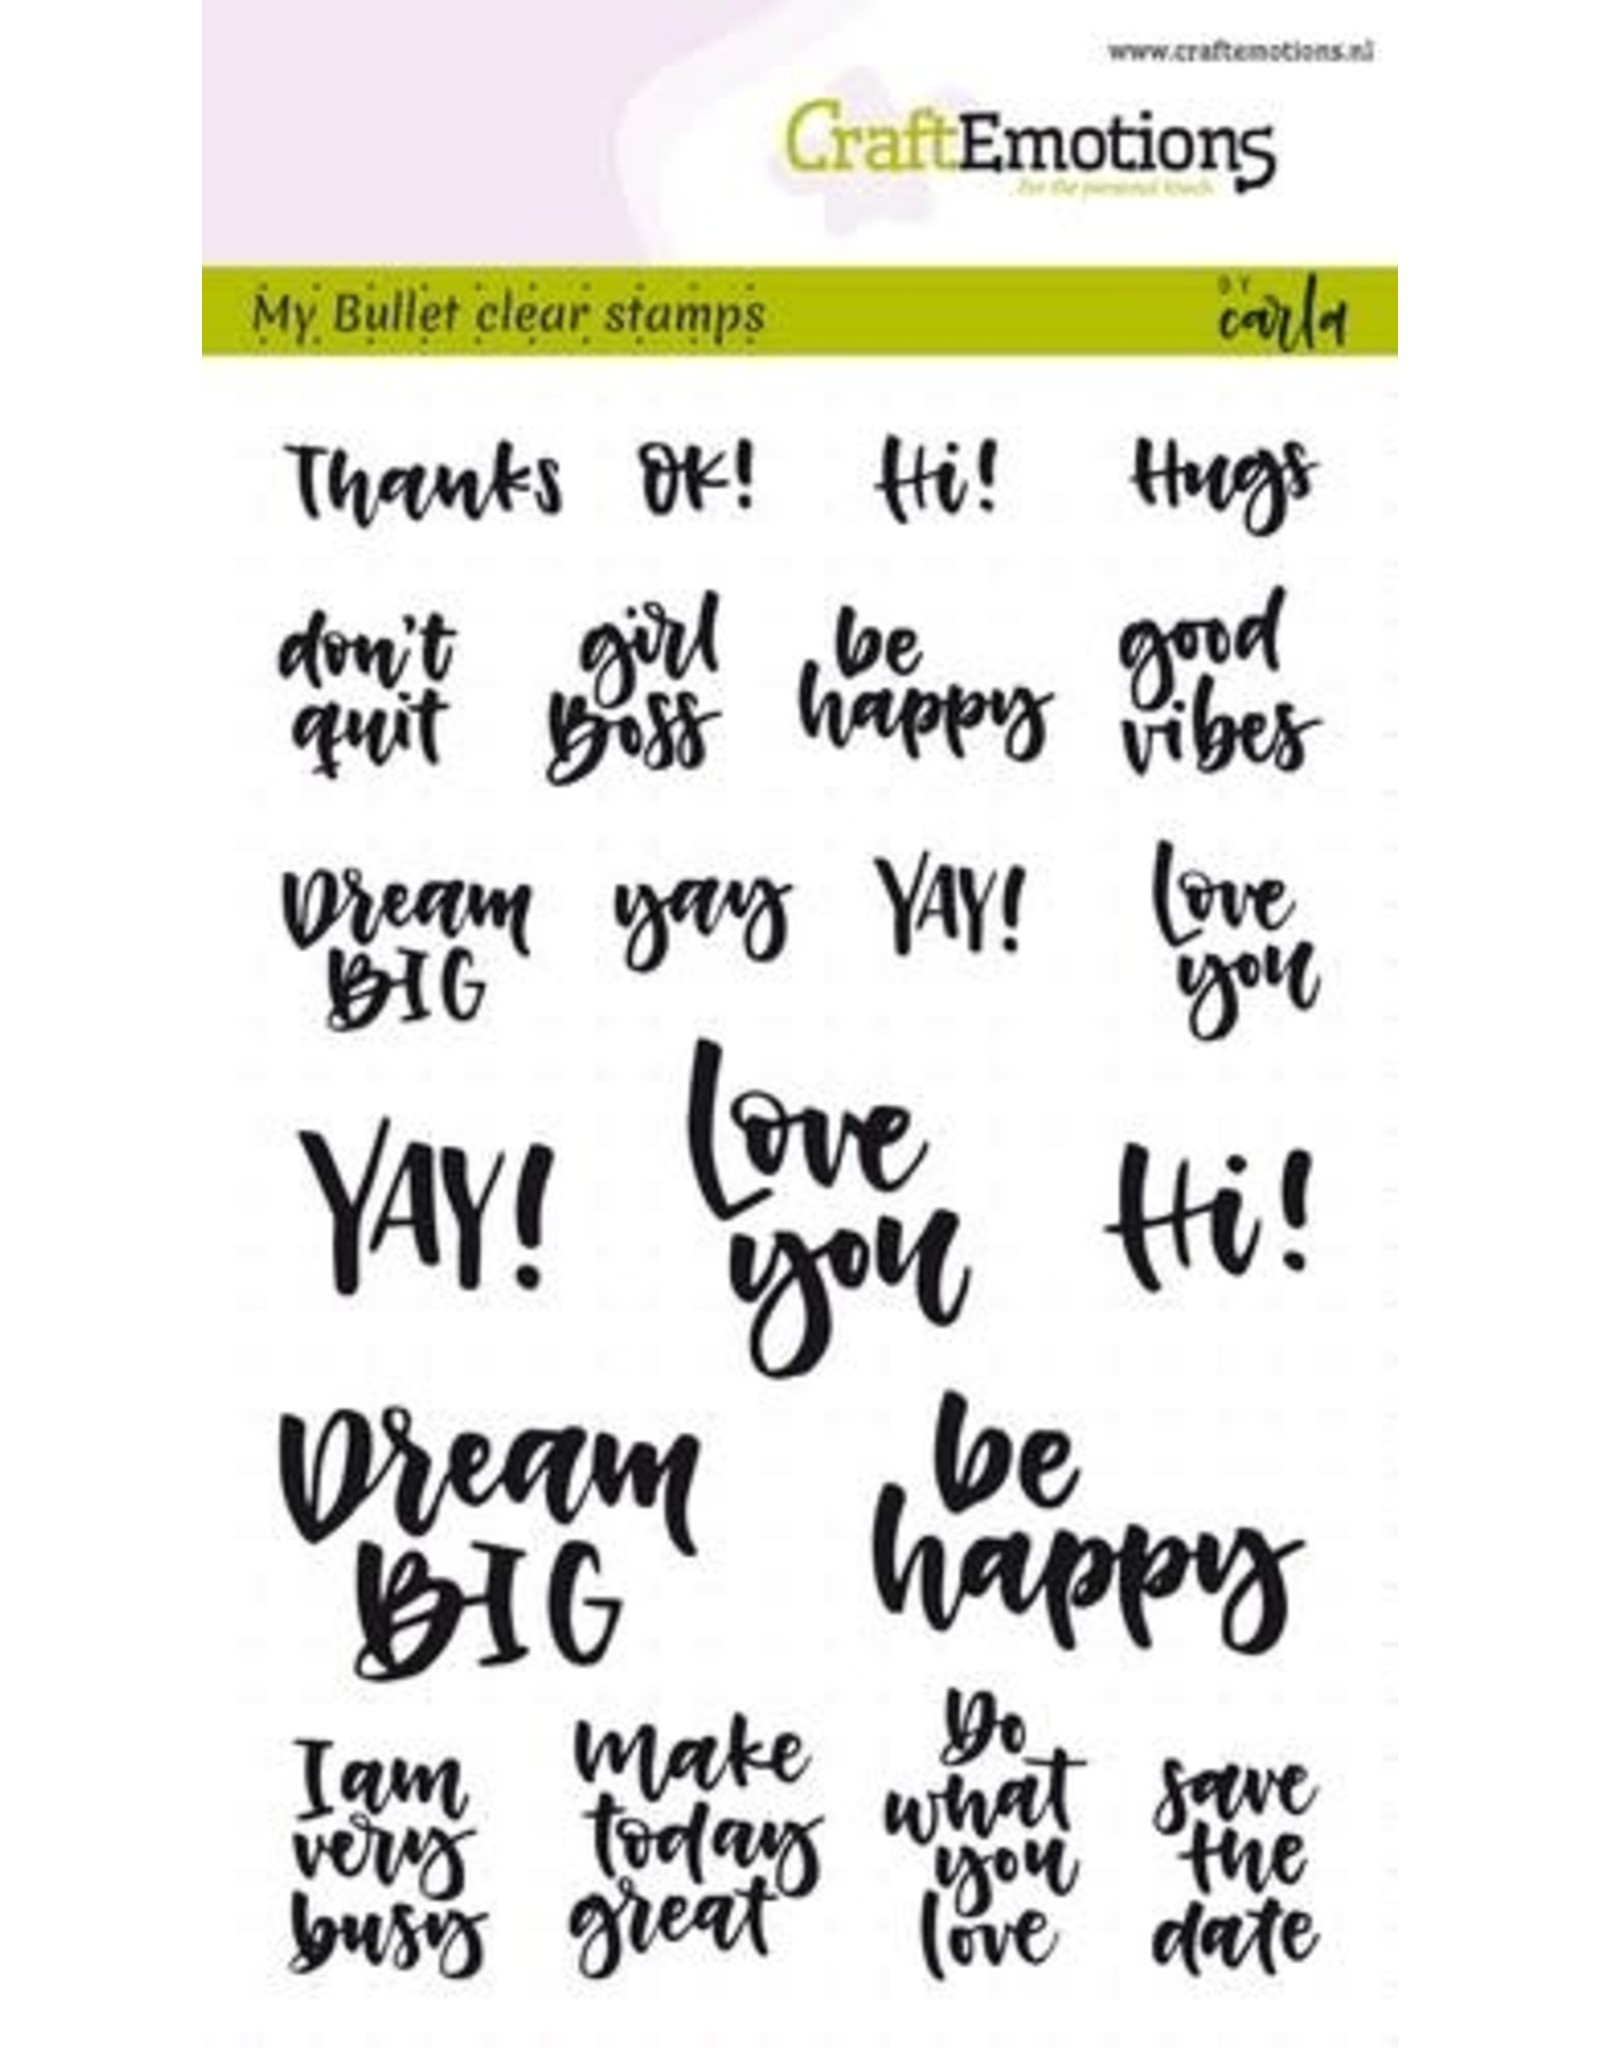 Craft Emotions CraftEmotions clearstamps A6 - Bullet Journal - quotes (Eng) Carla Kamphuis